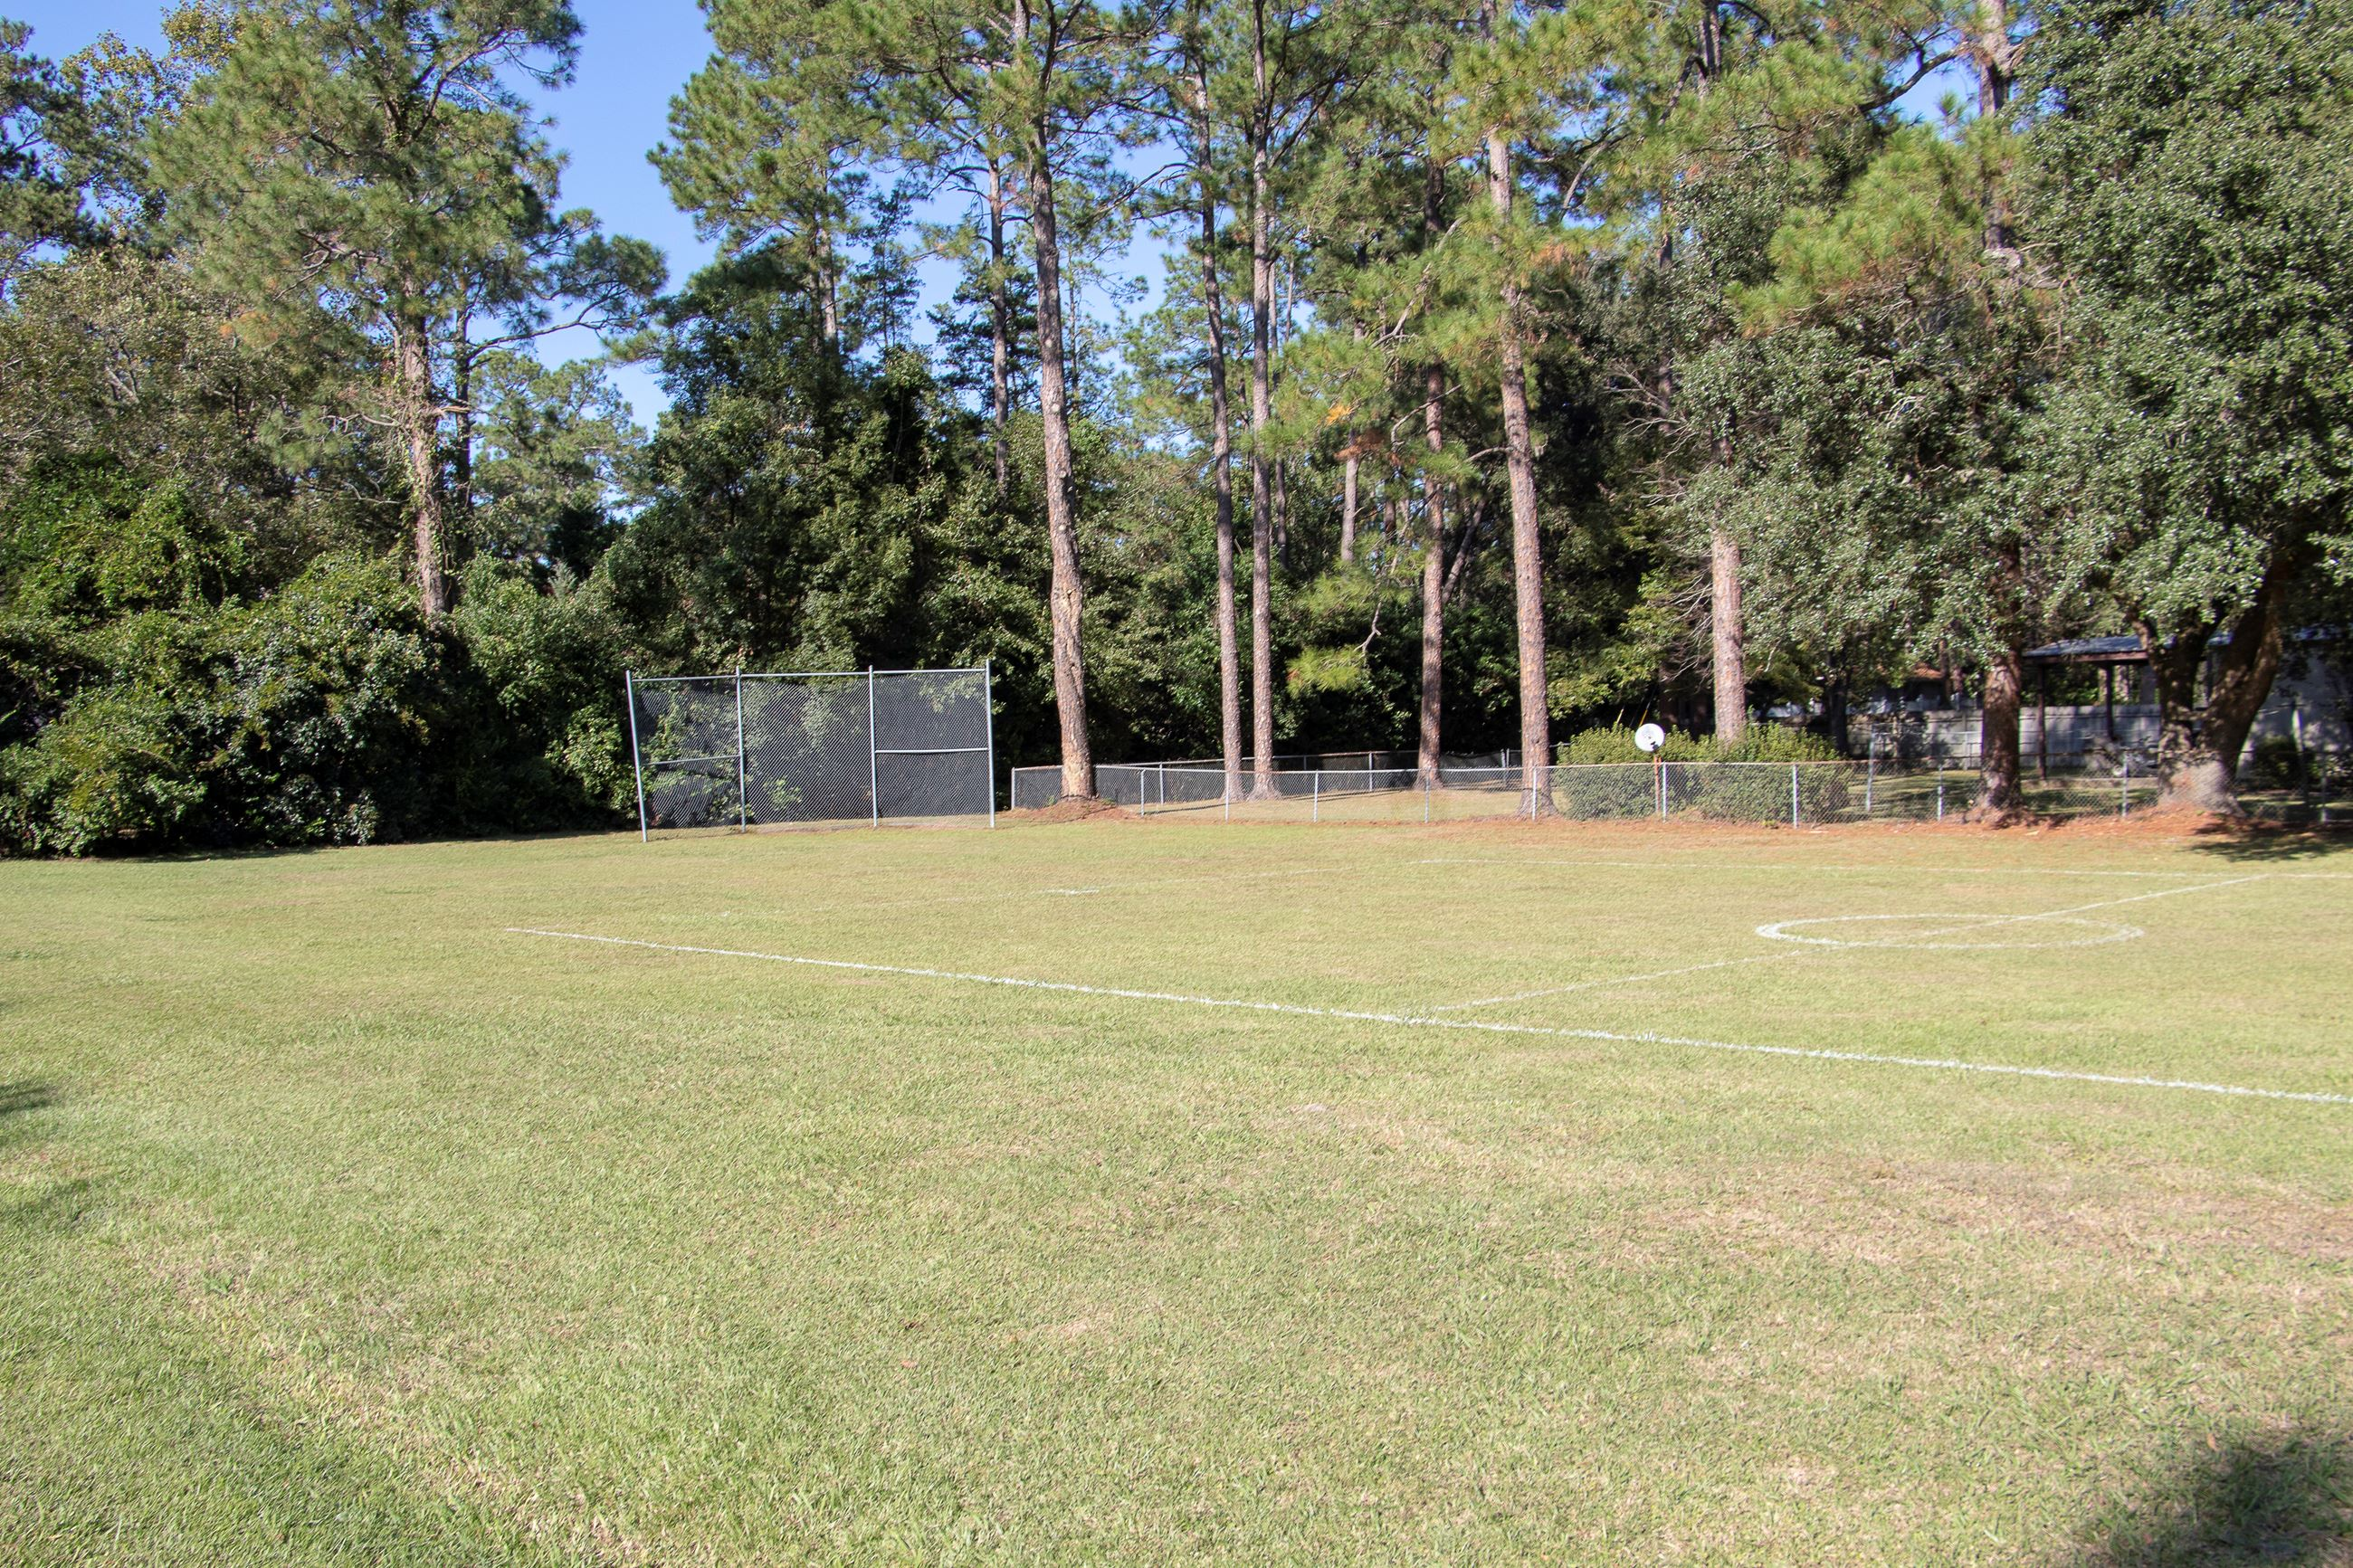 An image of a soccer field.